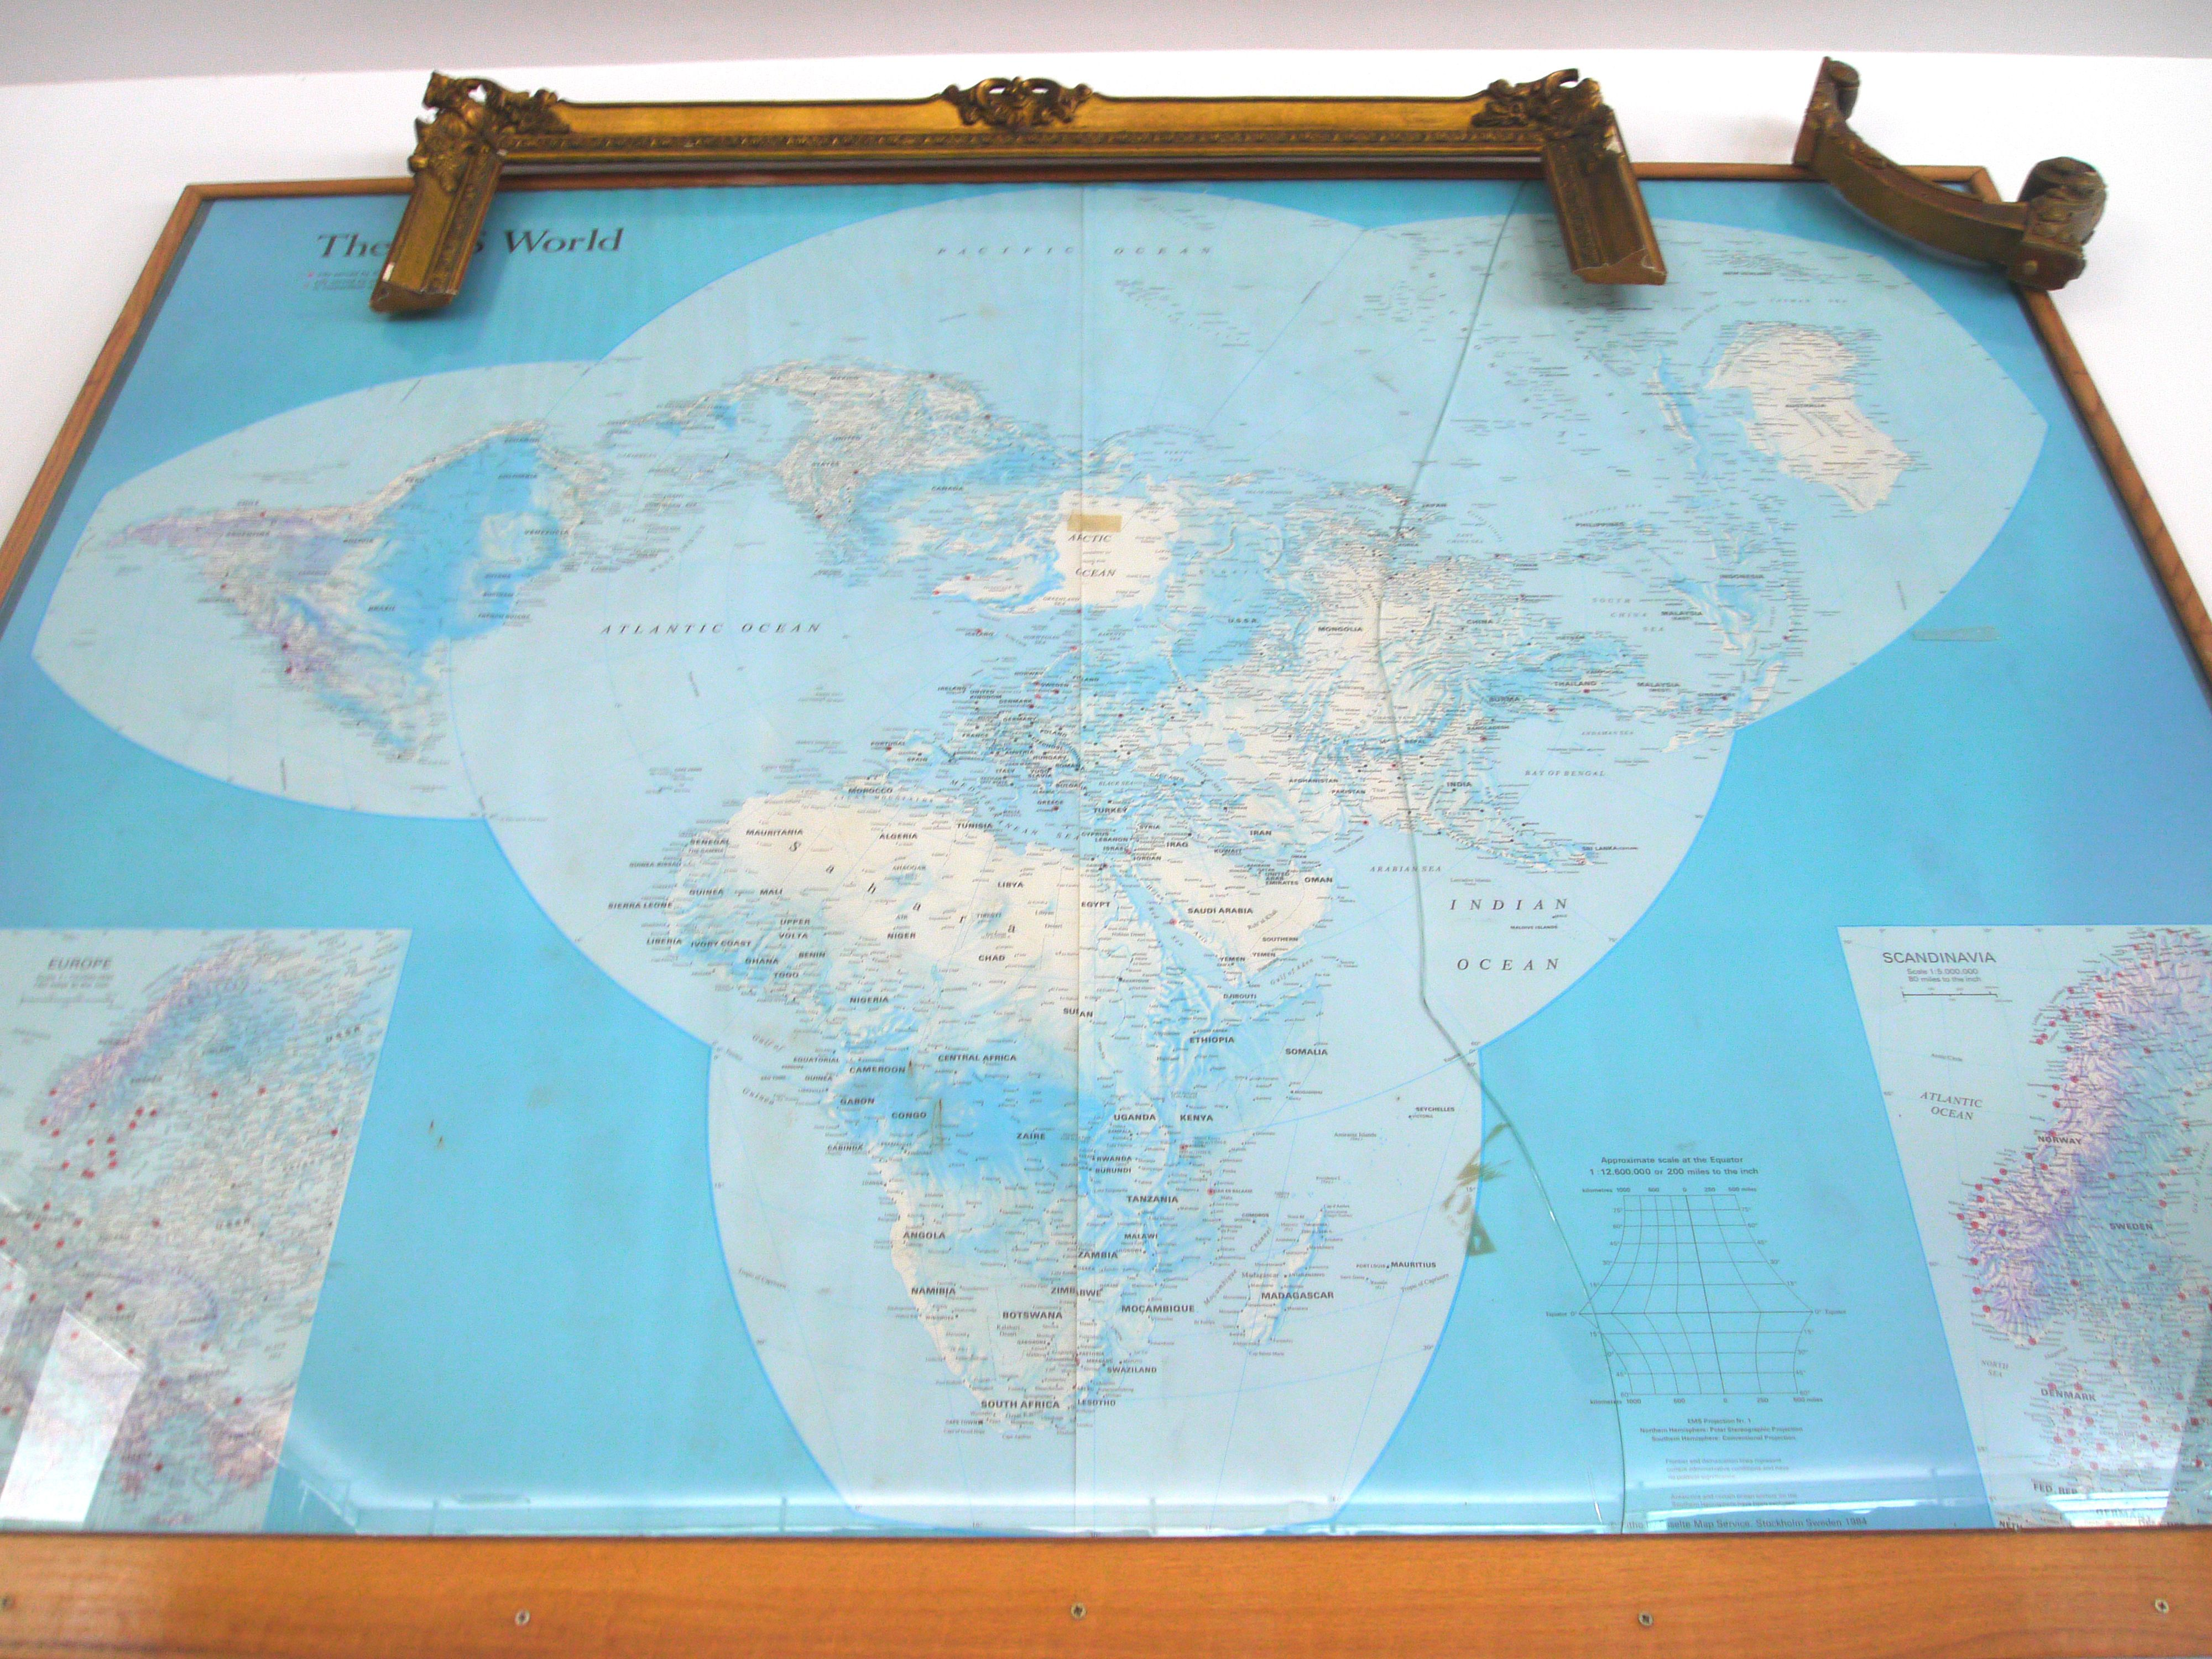 World Map by Scandinavian Airlines